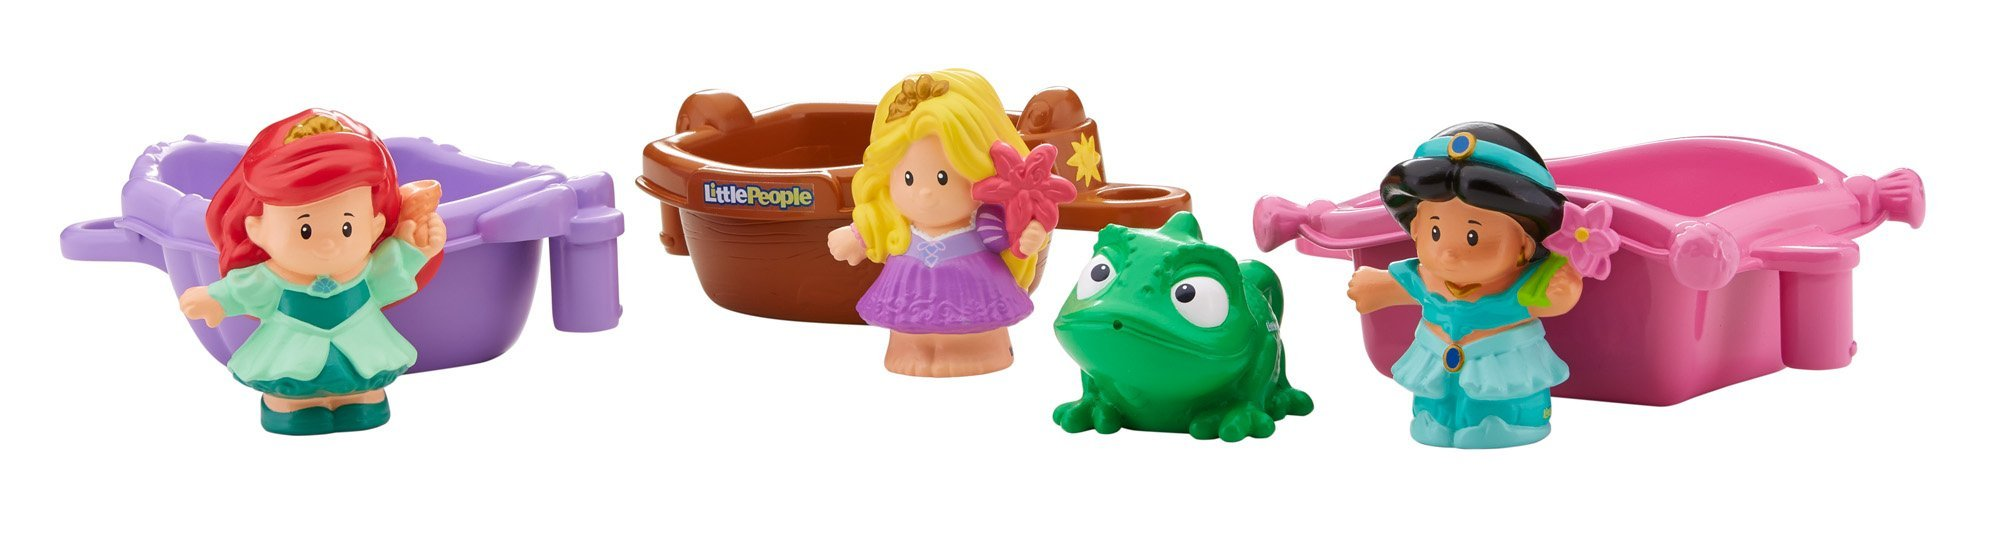 Fisher-Price Little People Disney Princess, Princess, Floating Boats